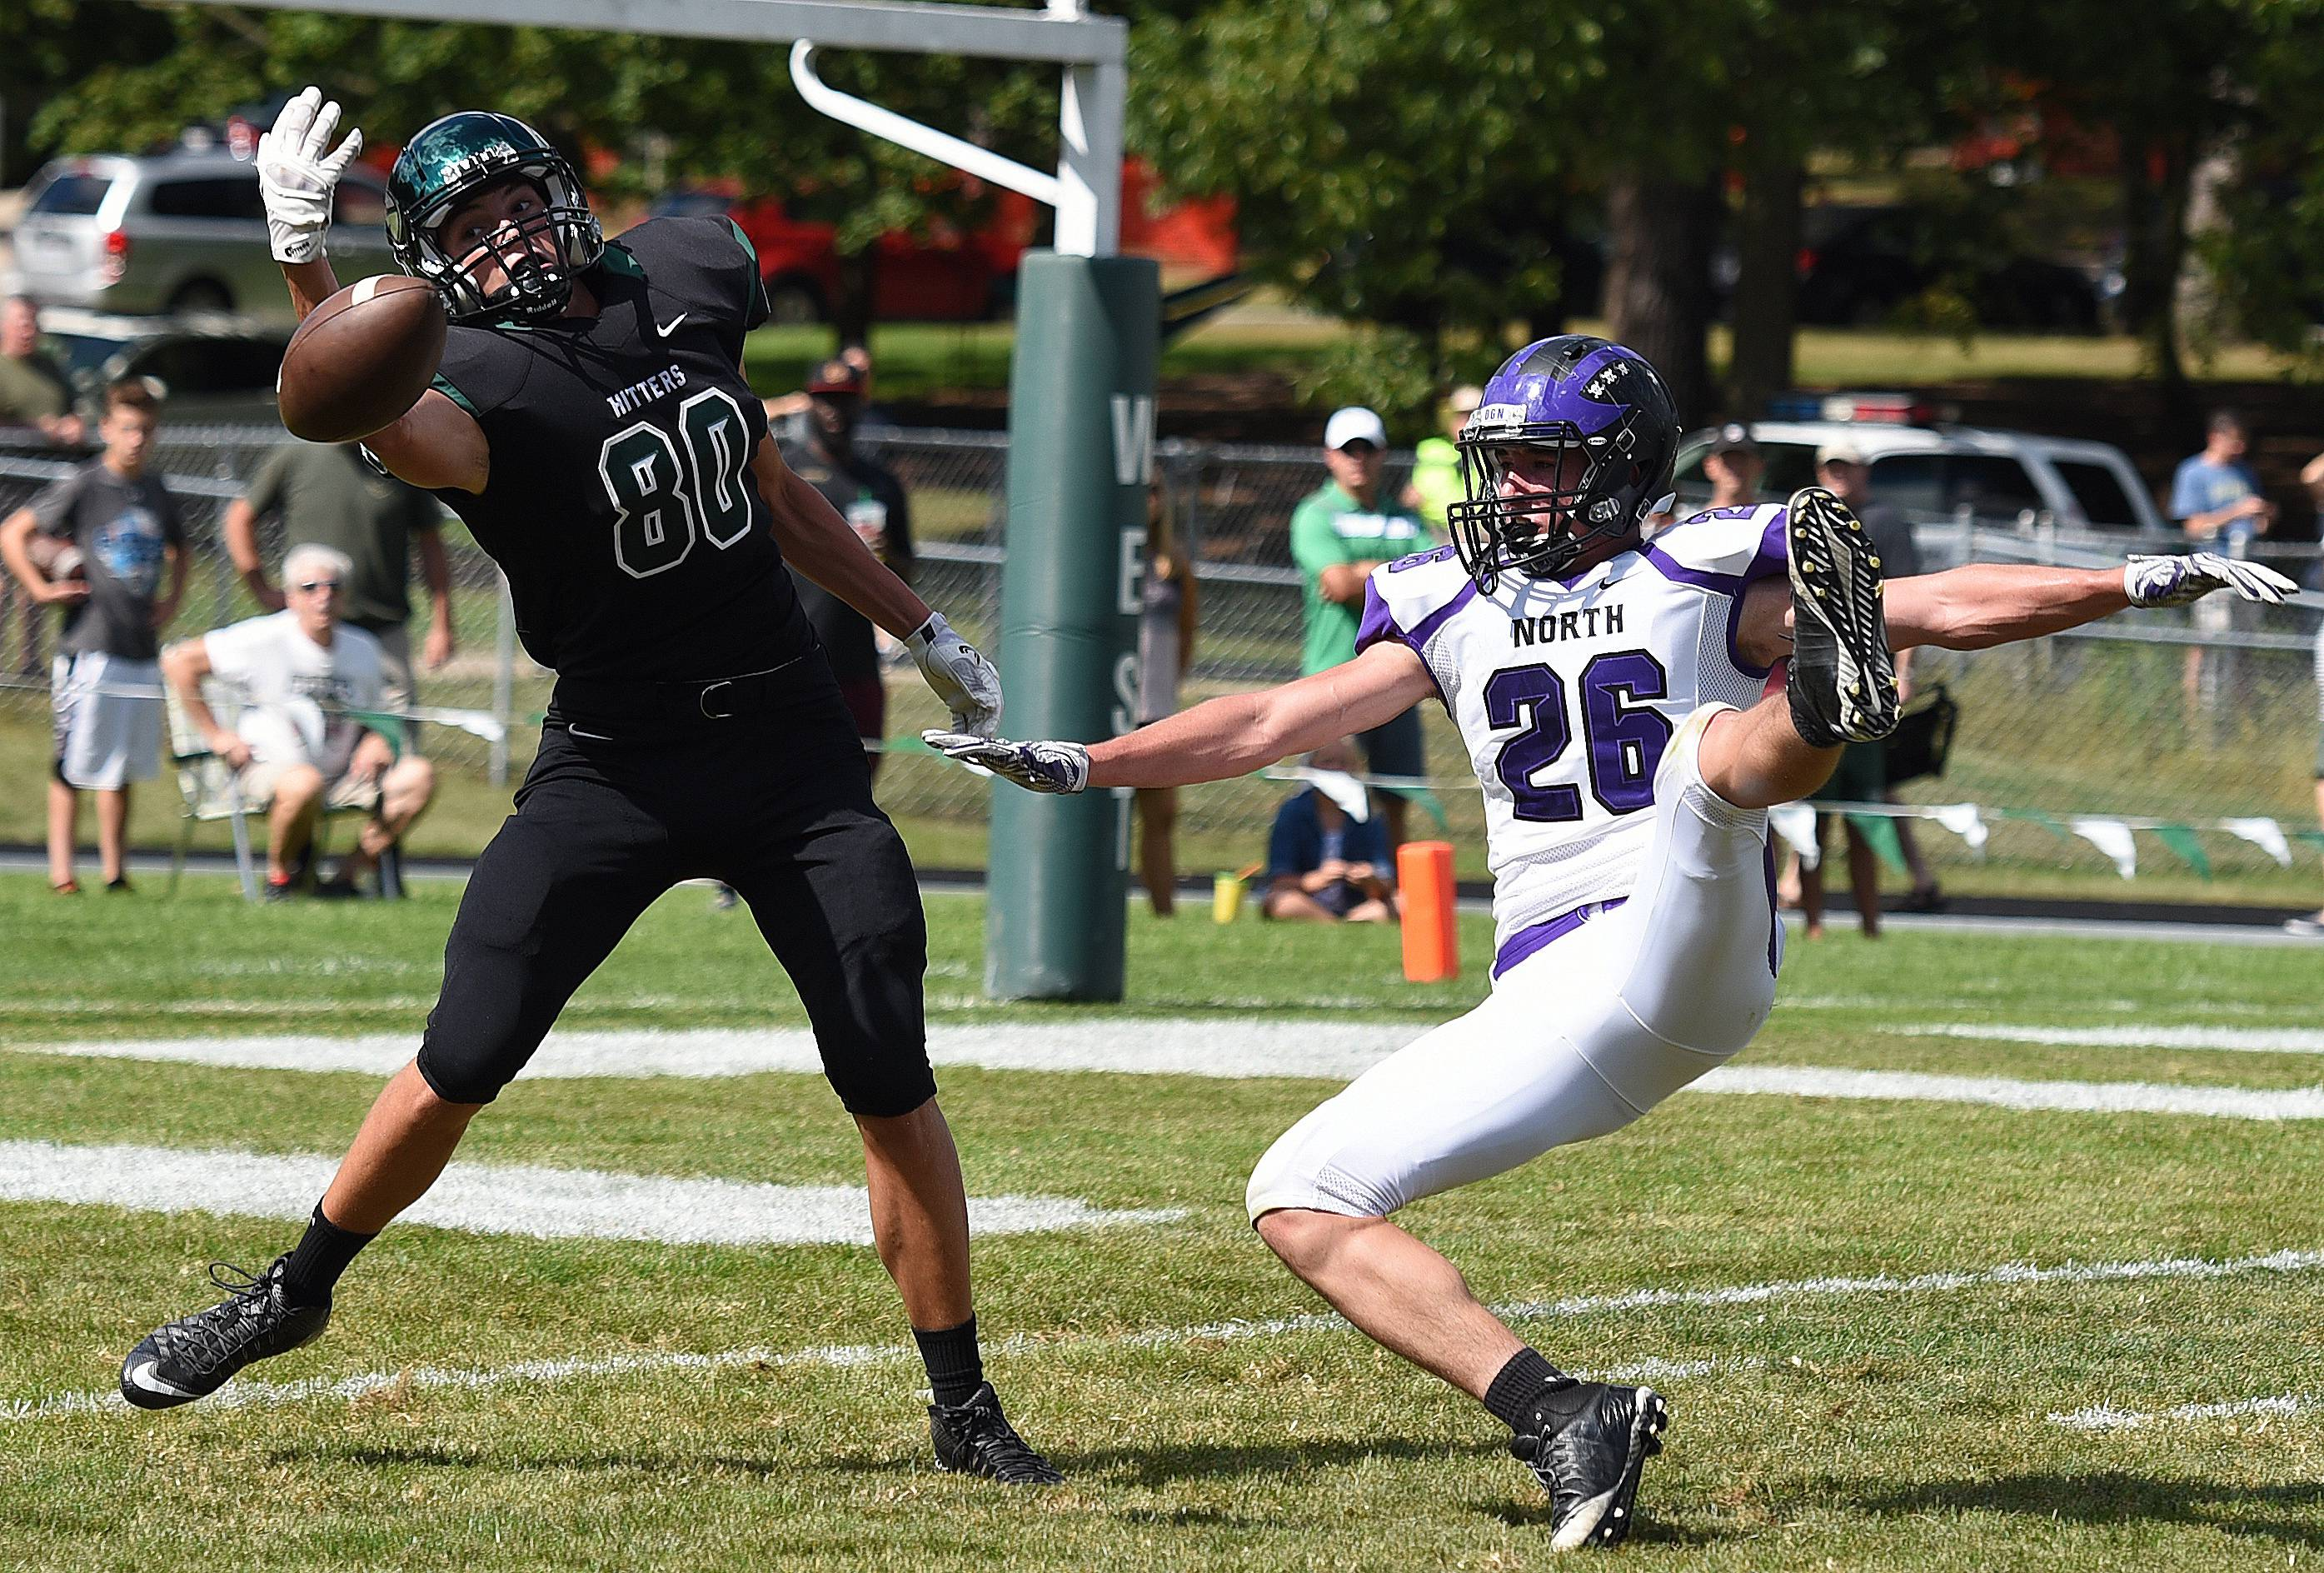 Glenbard West's Alec Pierce (80) reaches for the ball as Downers Grove North's Joe Keys (26) falls back during the Downers Grove North at Glenbard West football game Saturday.